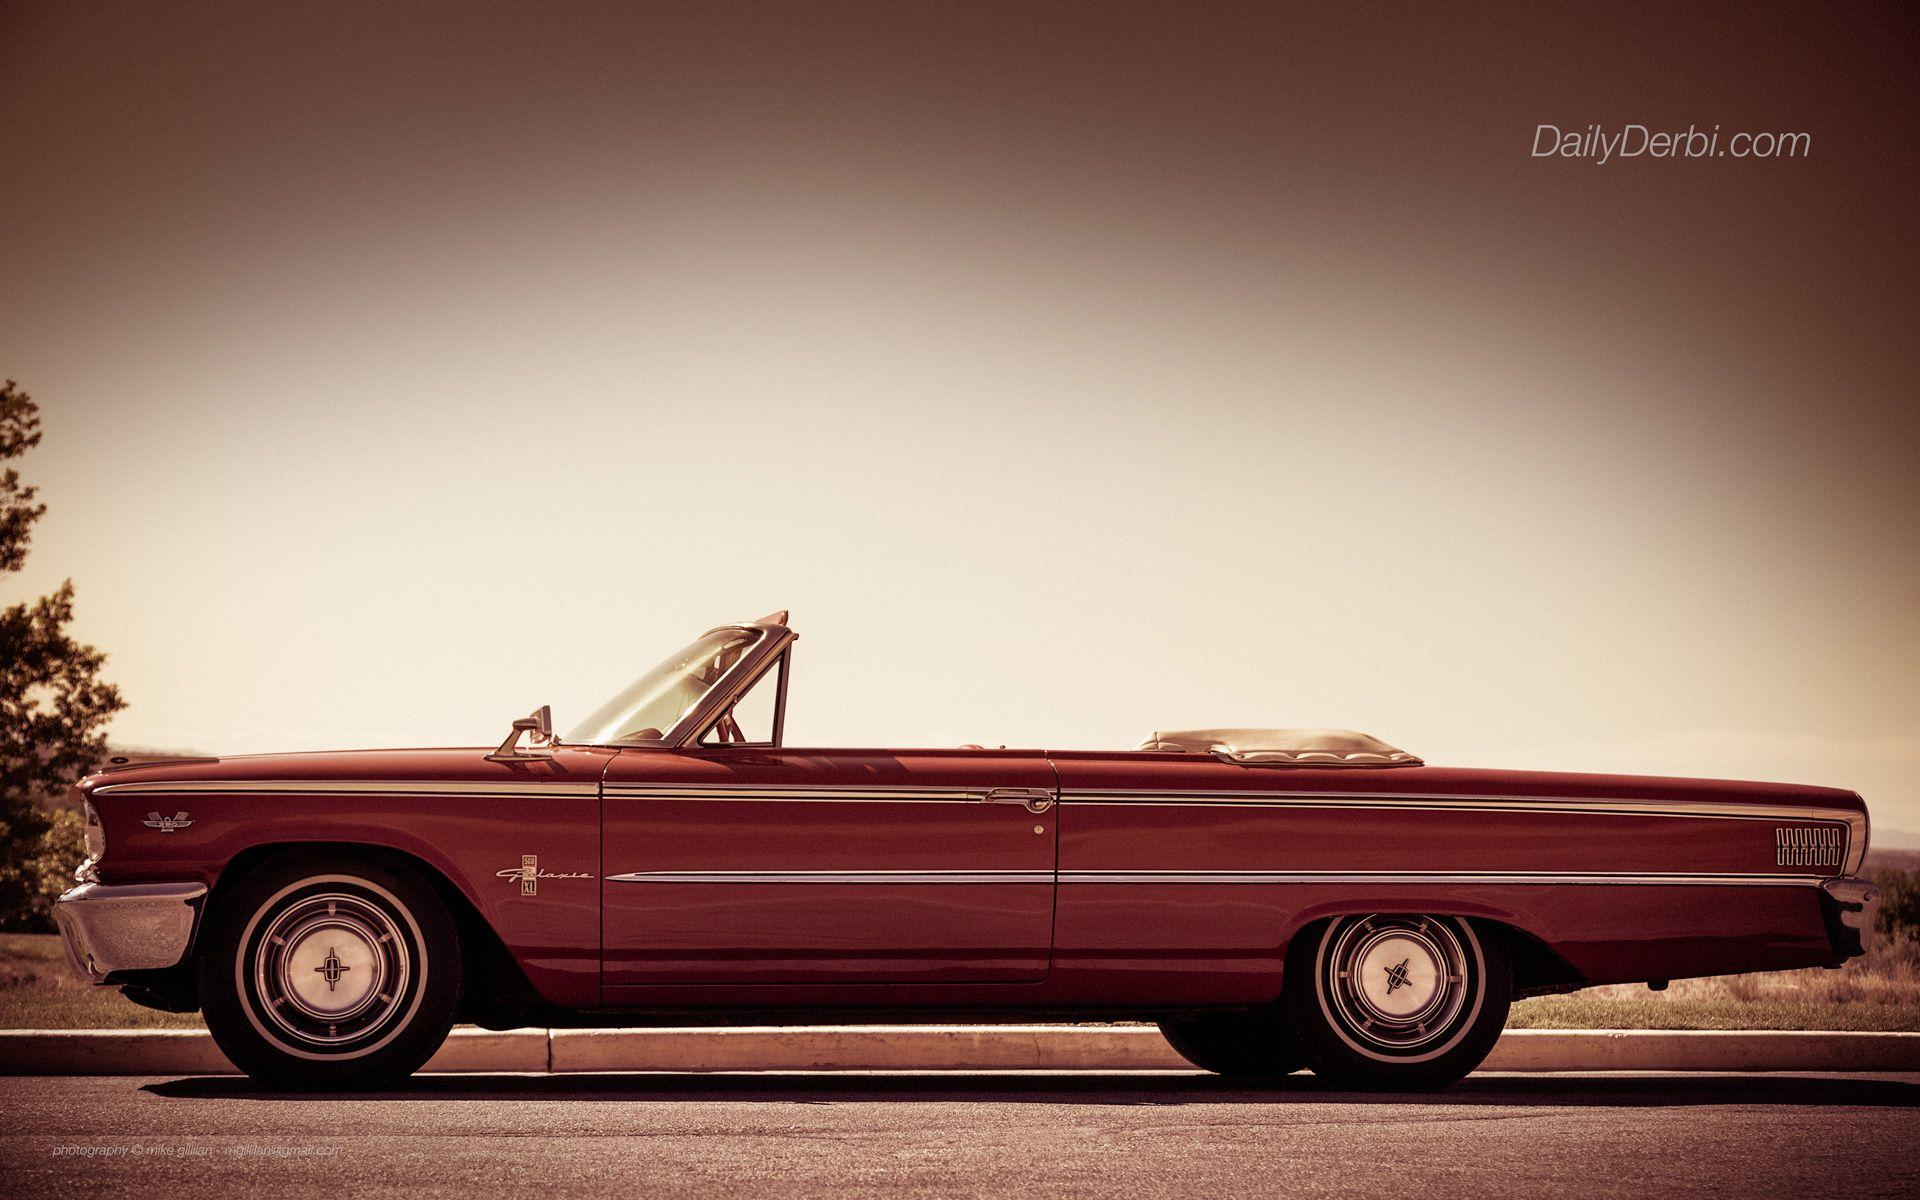 Ford Galaxie 500 Wallpapers 5 - 1920 X 1200 | stmed.net